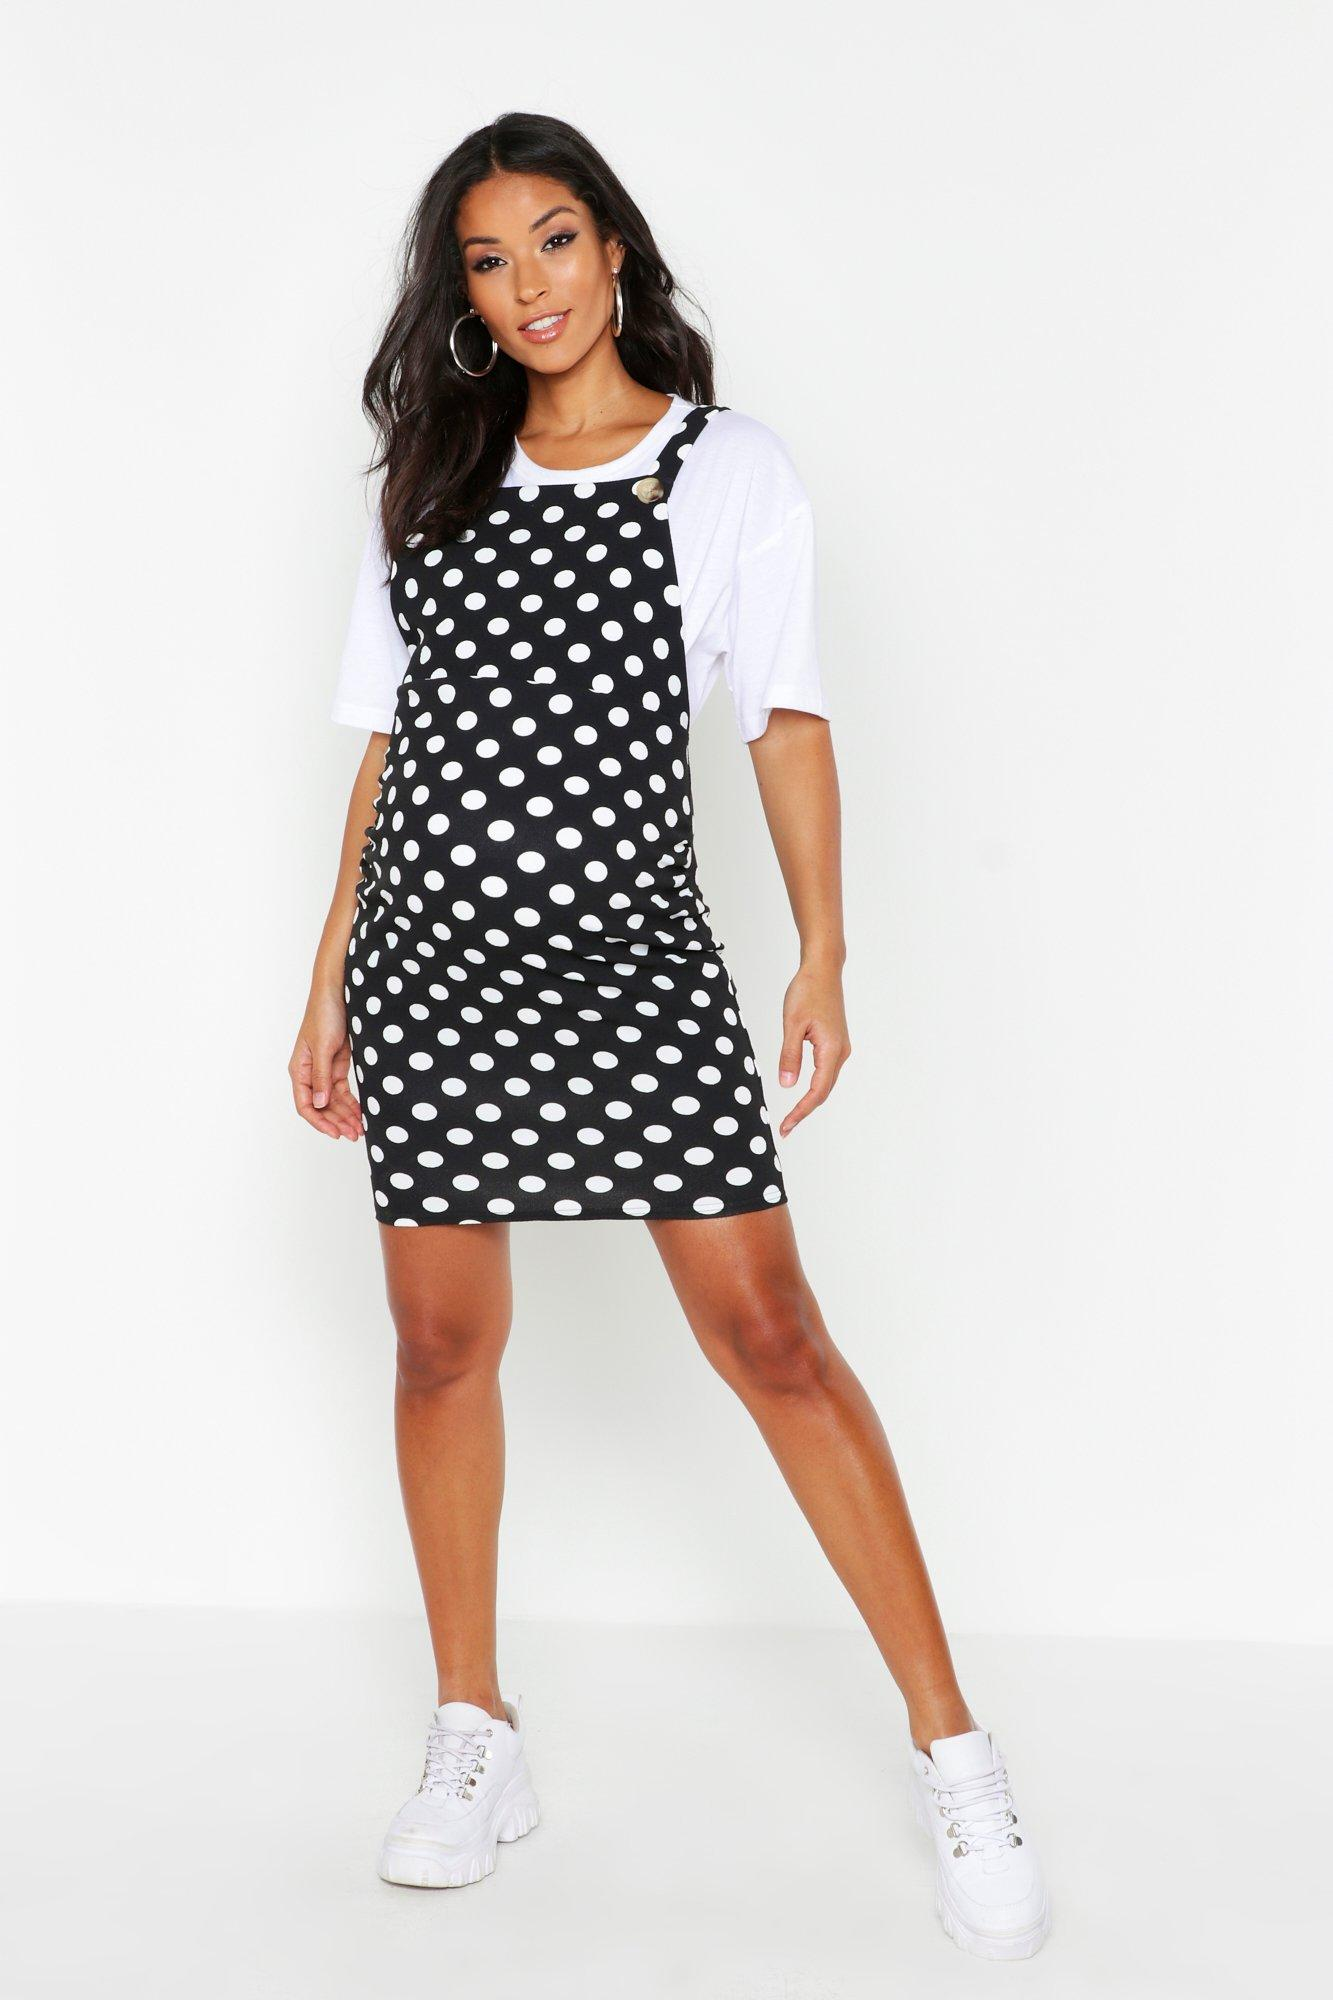 Vintage Maternity Clothes History Womens Maternity Polka Dot Pinafore Dress - Black - 12 $17.60 AT vintagedancer.com